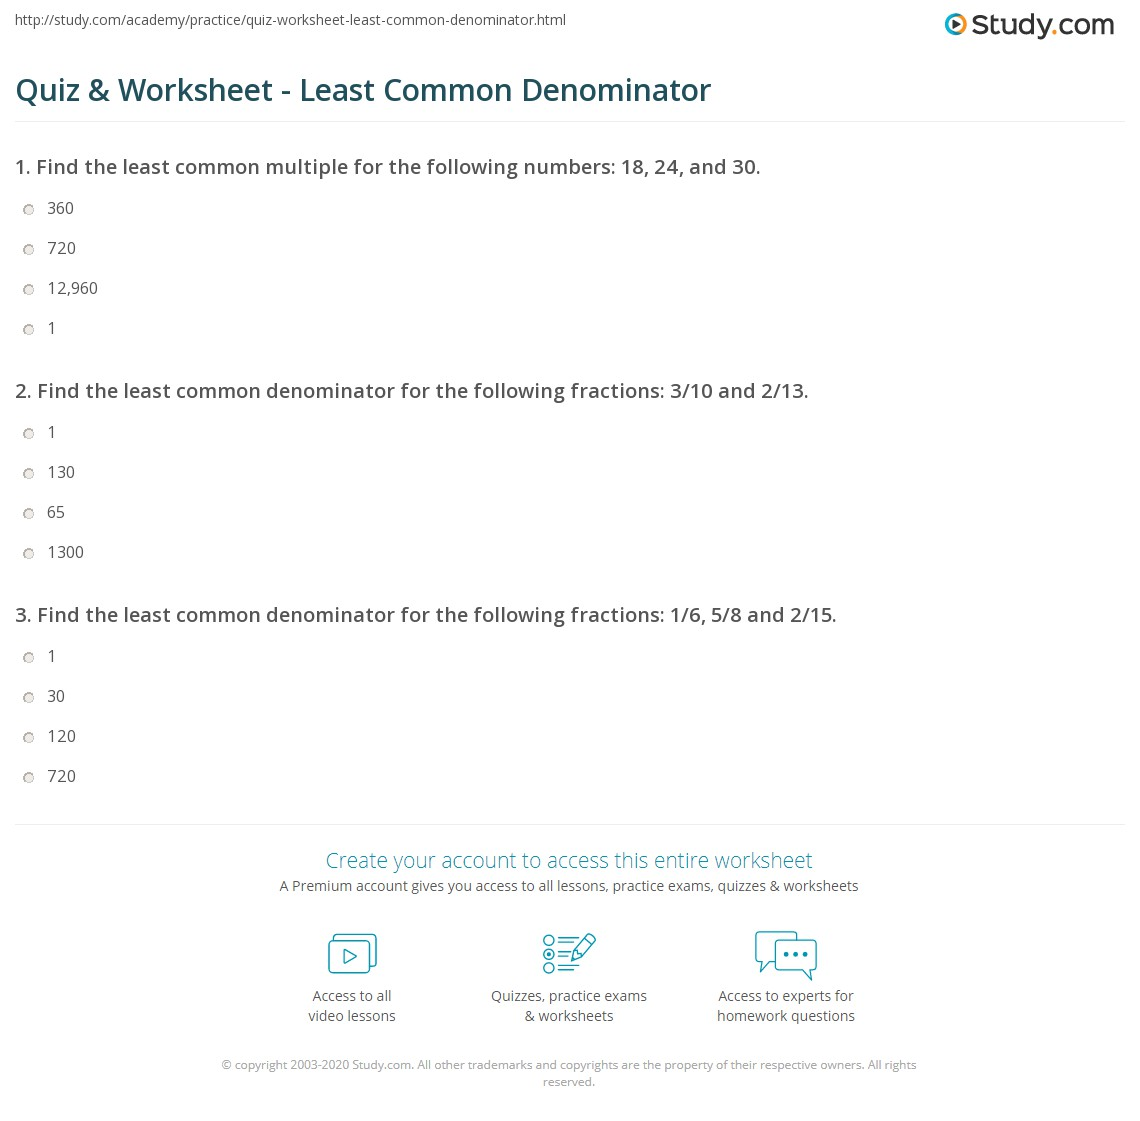 worksheet Common Denominator Worksheets quiz worksheet least common denominator study com print definition examples worksheet